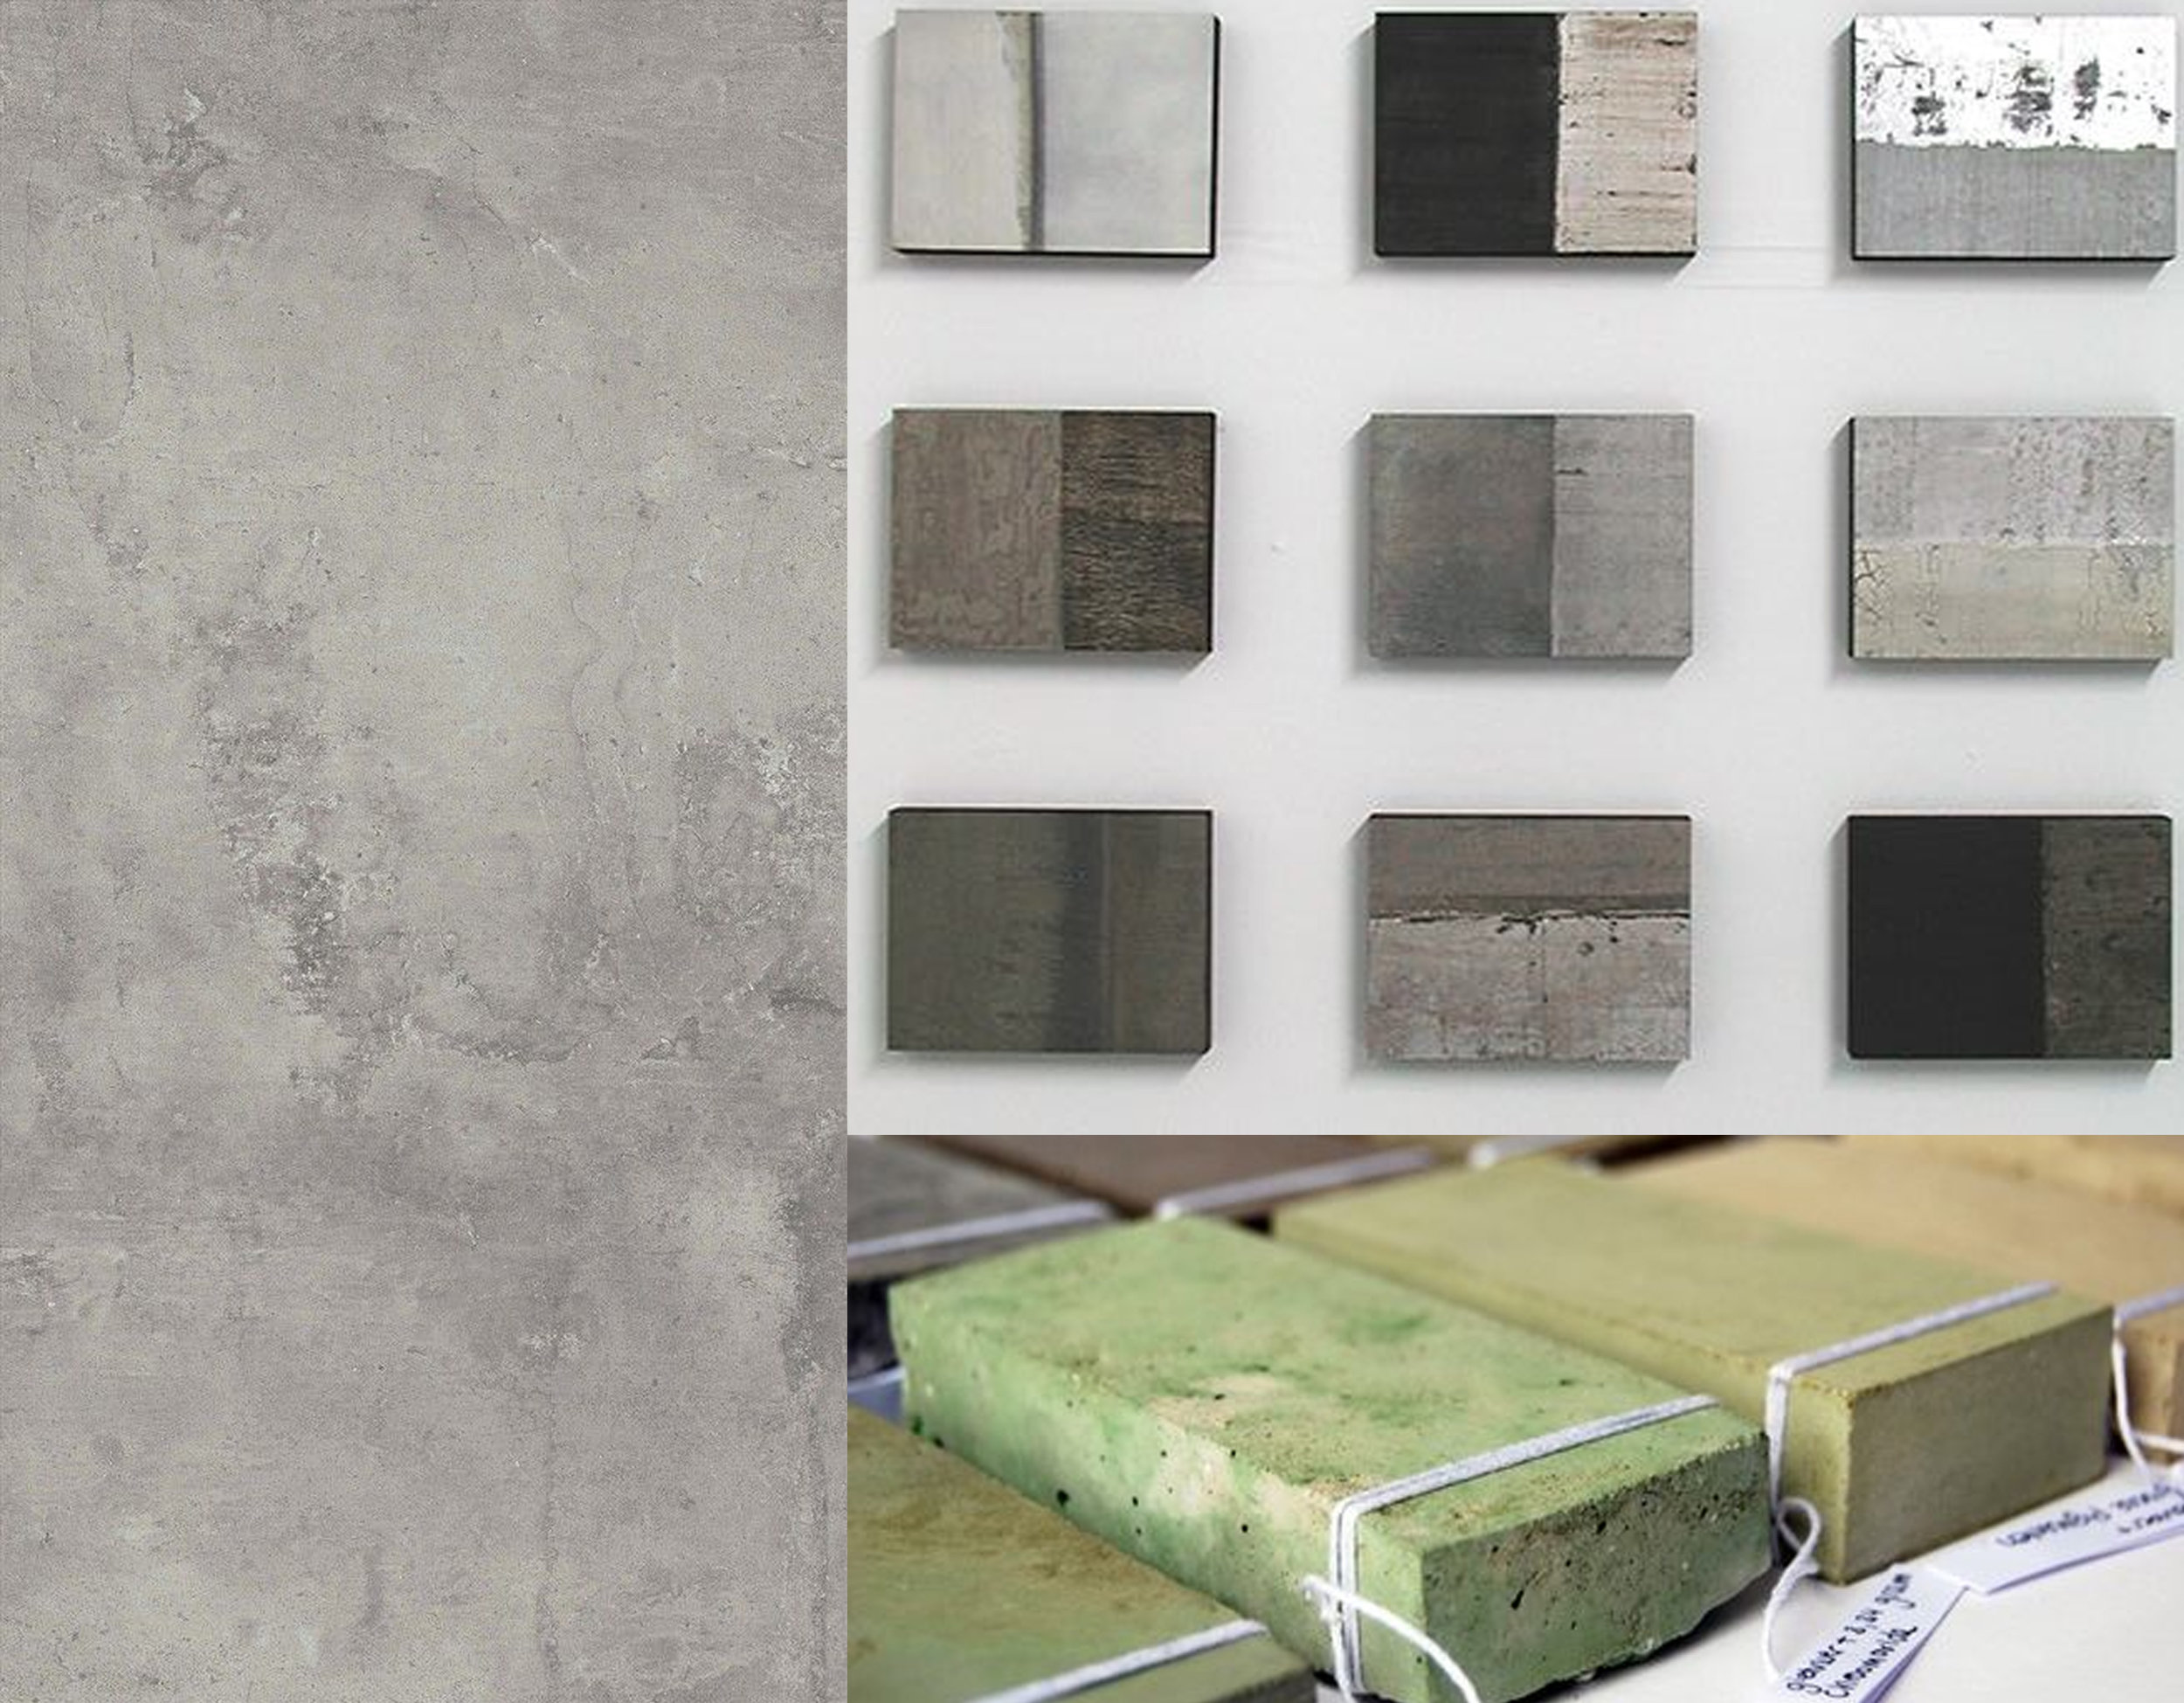 tiles with concrete look from  Beaumont tiles  - concrete finishes via  Leslie Avon Miller  - Material study: color and concrete  Studio Femke Roefs